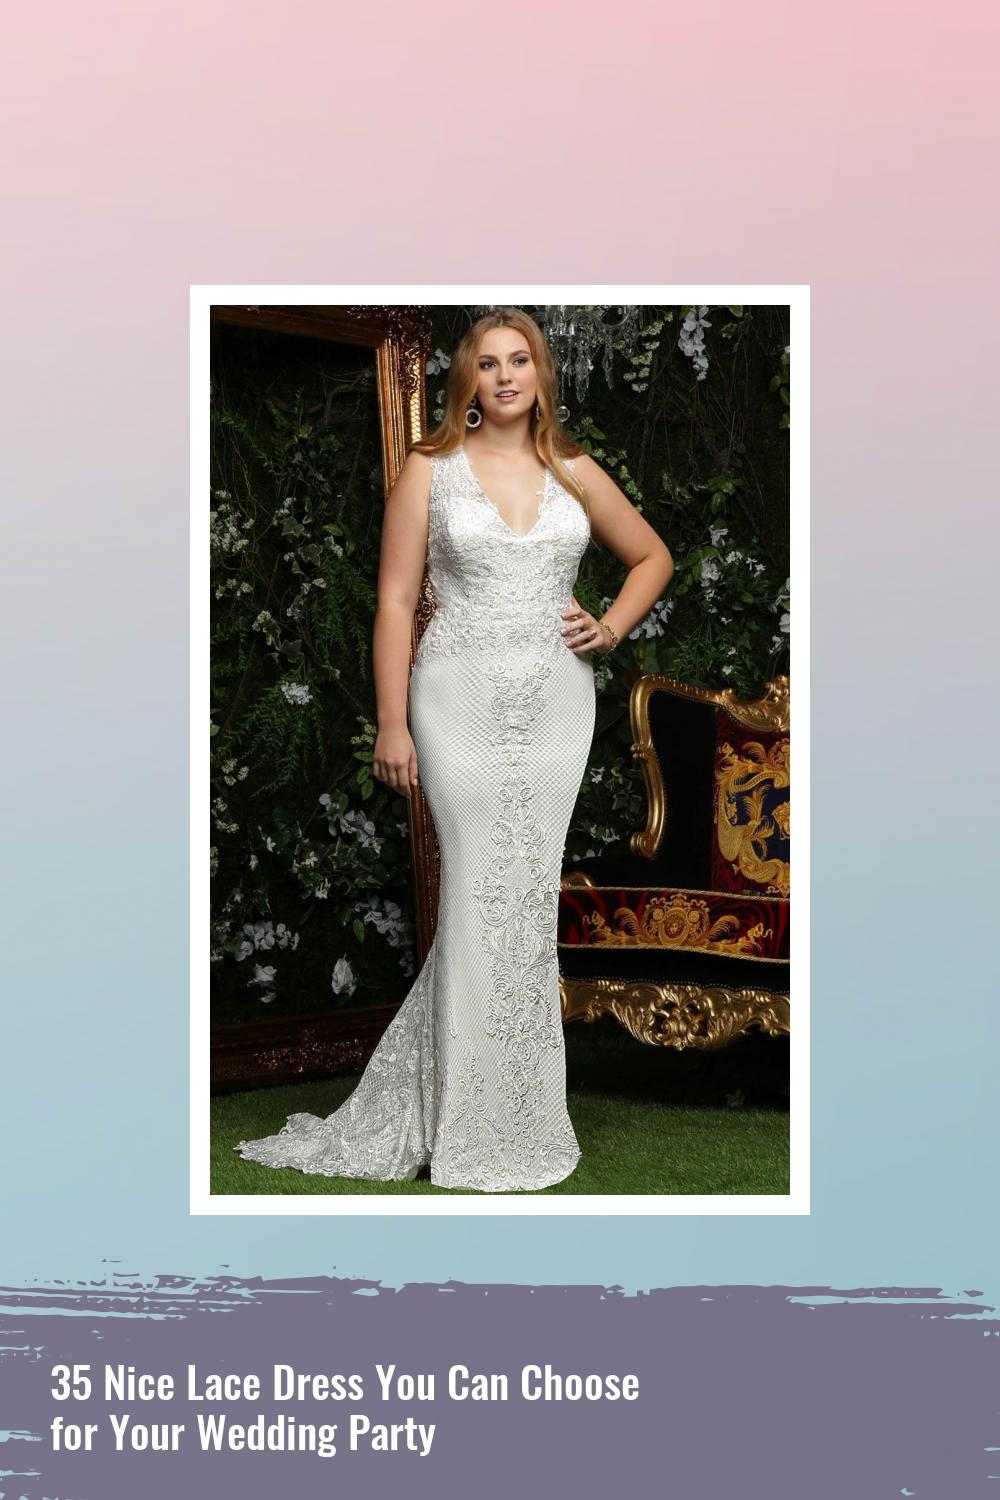 35 Nice Lace Dress You Can Choose for Your Wedding Party 29